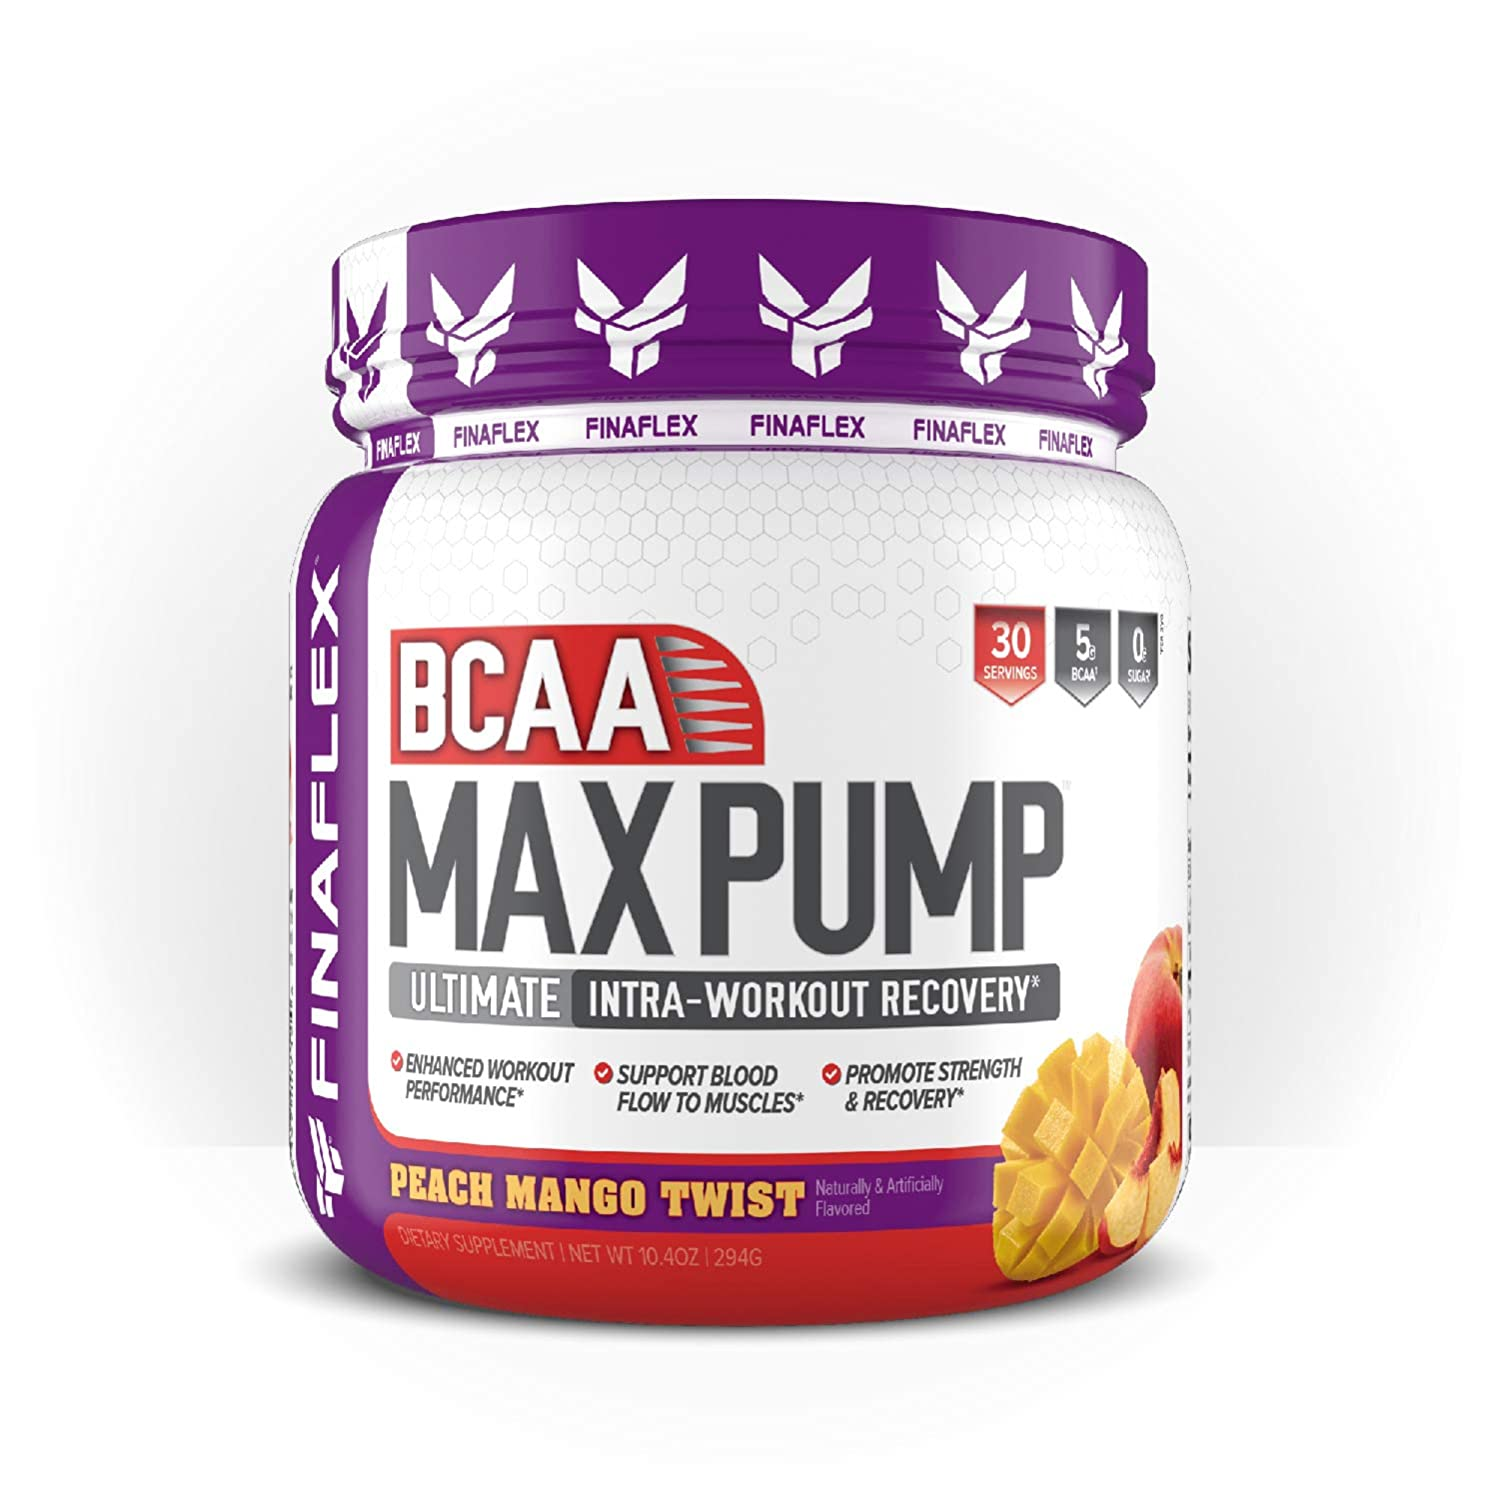 Finaflex Bcaa Max Pump Peach Mango Ultimate Intra Workout Recovery 10 Ounce, 10 Ounce